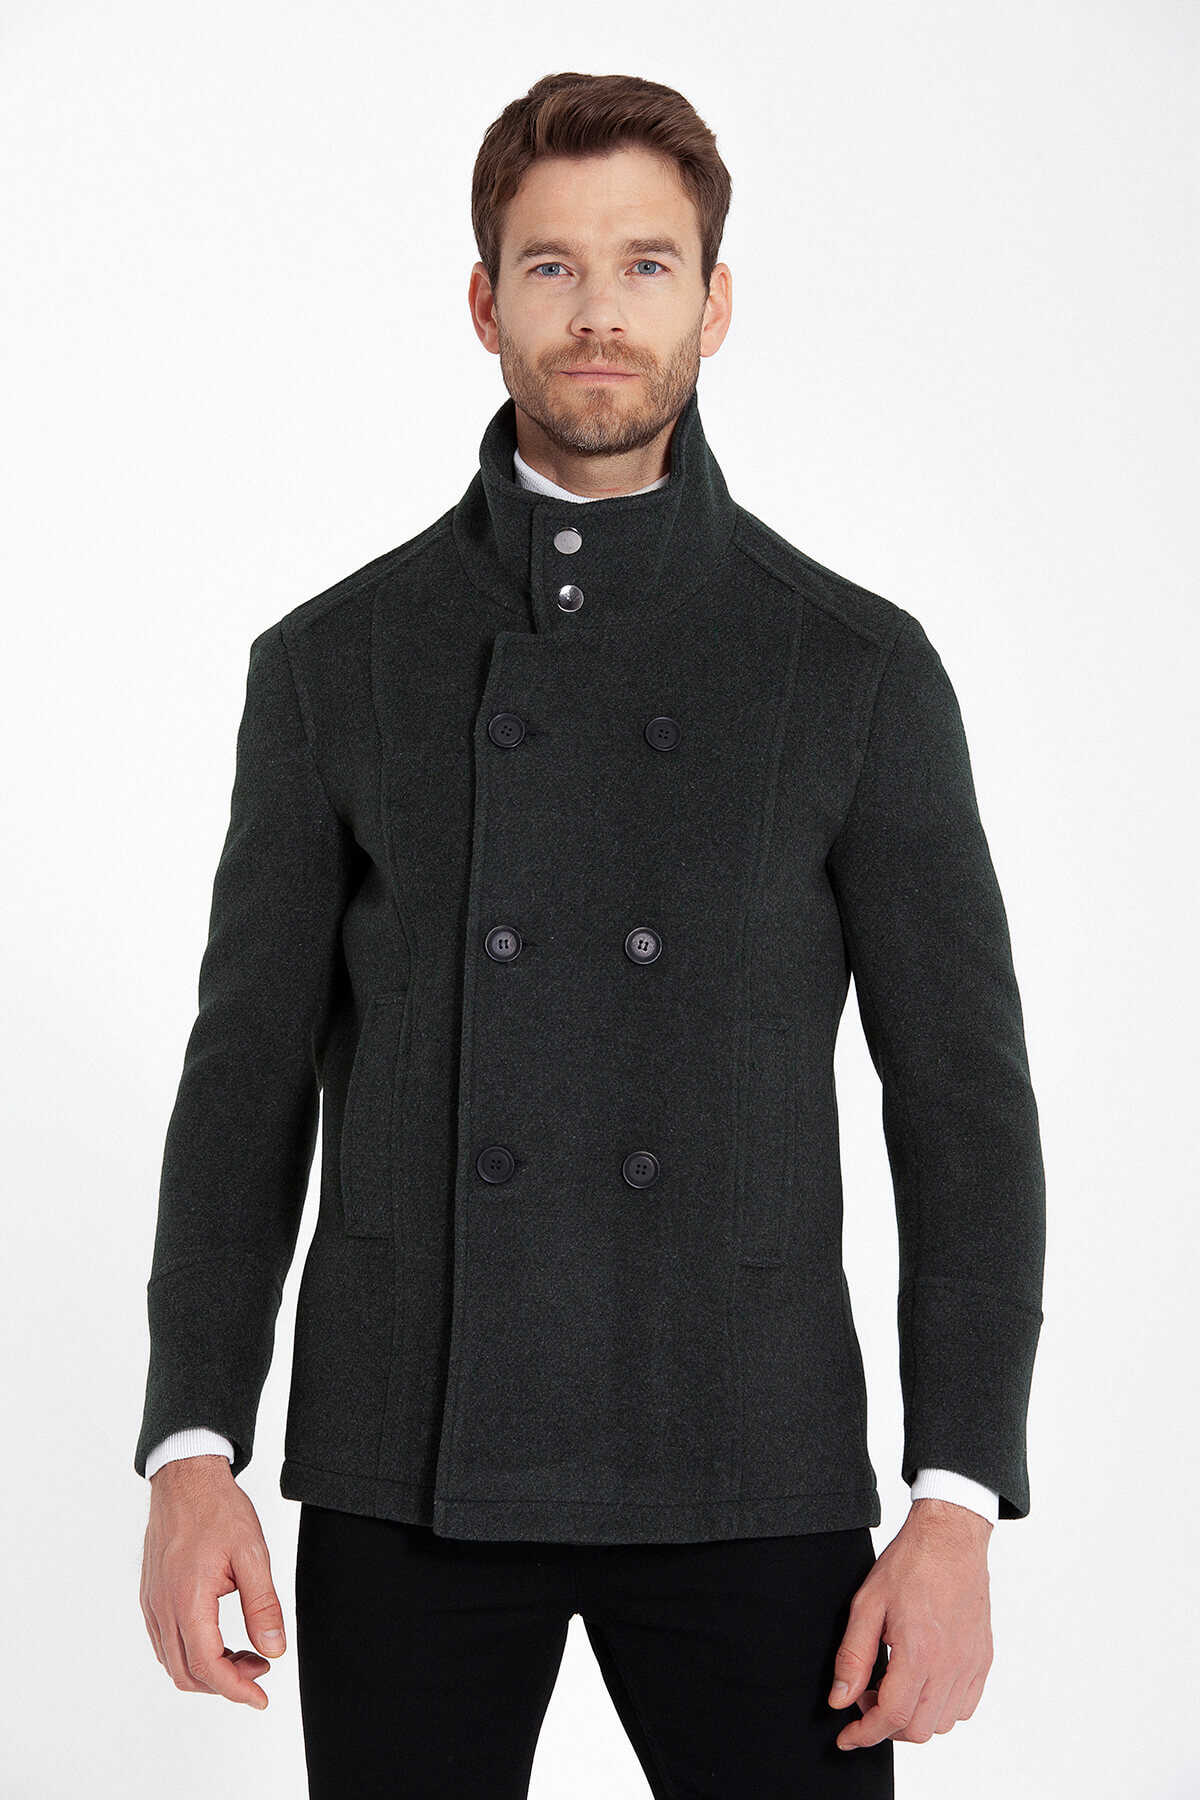 HATEM SAYKI - Green Buttoned Collar Wool Coat